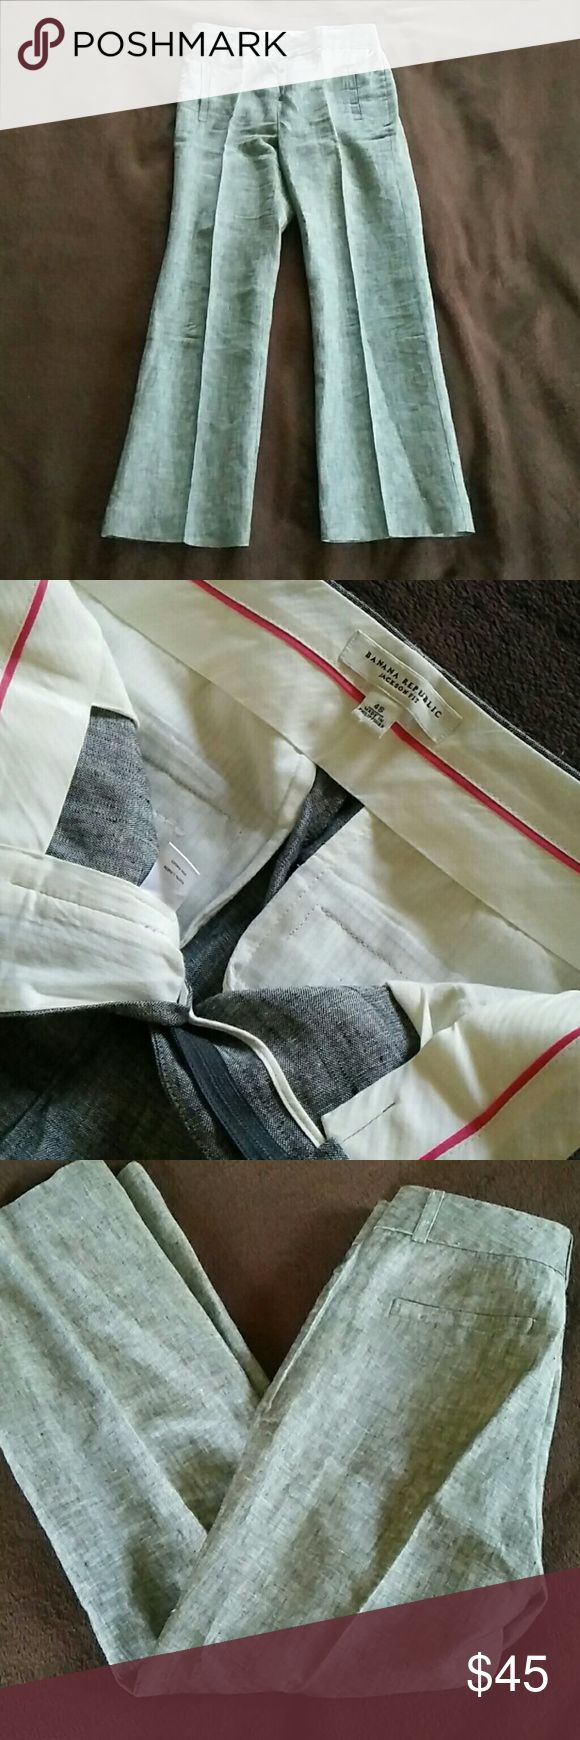 Banana Republic Linen Trousers Gray linen trousers. In perfect used condition. Zipper and hook closure. Size listed as 4S. Banana Republic Pants Trousers